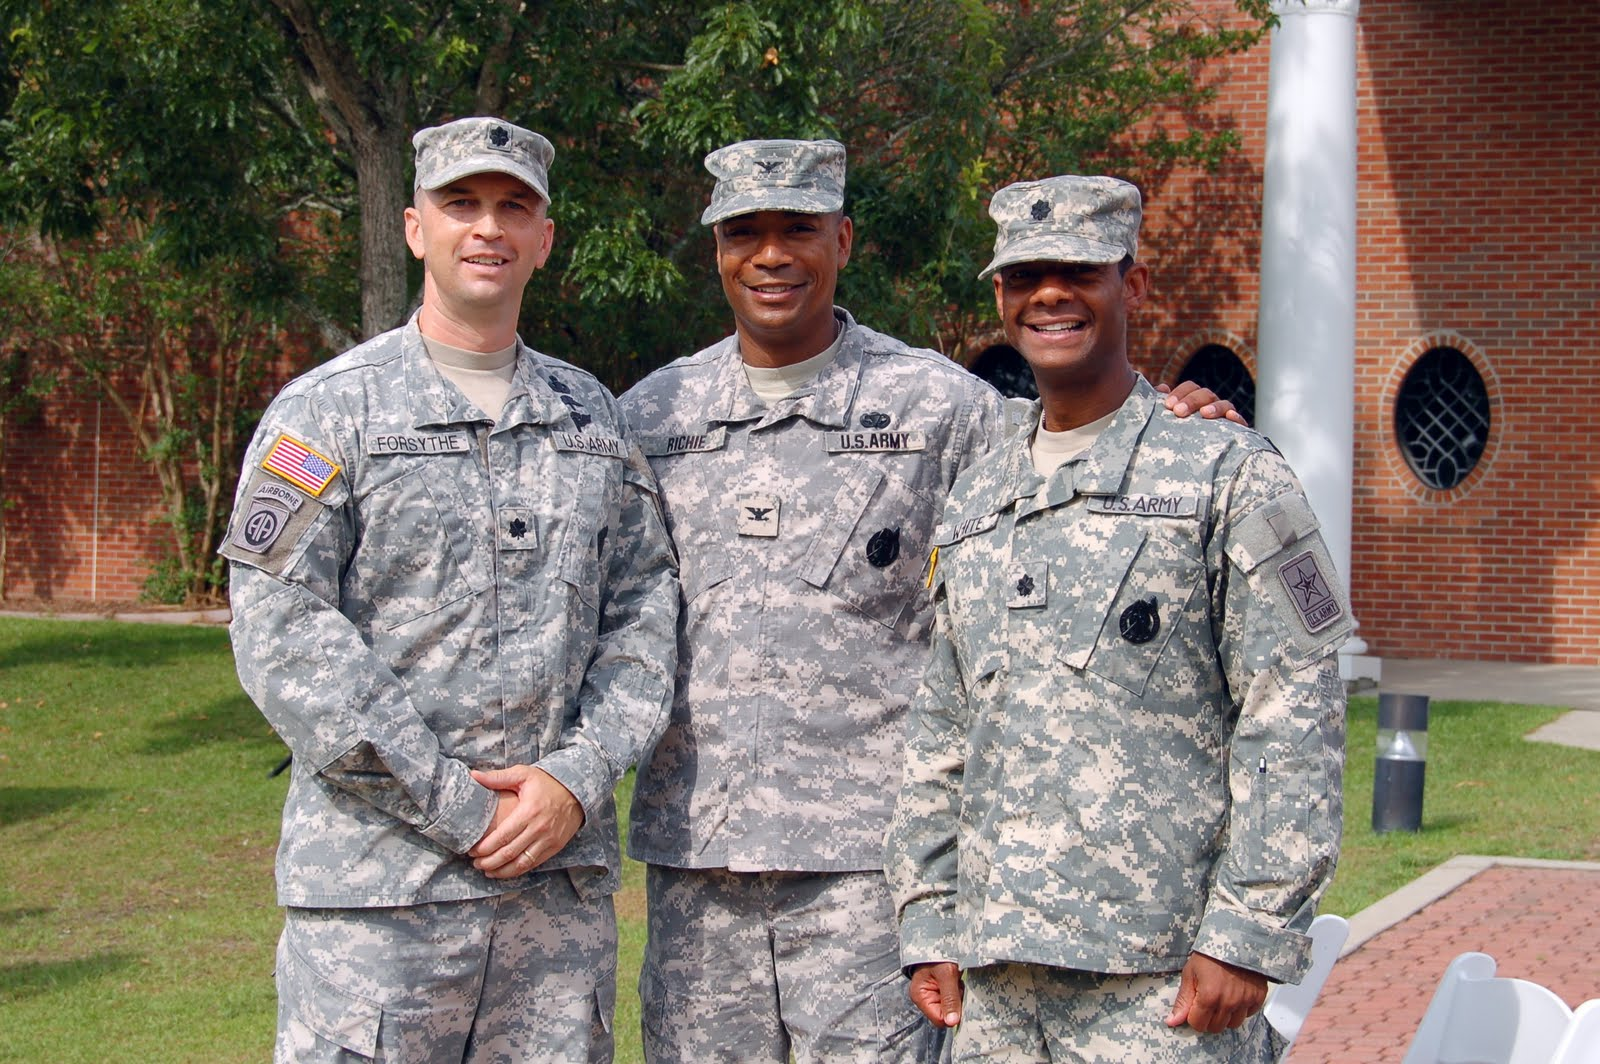 columbia recruiting battalion  ltc forsythe col richie and ltc white gather for a photo after the change of command ceremony